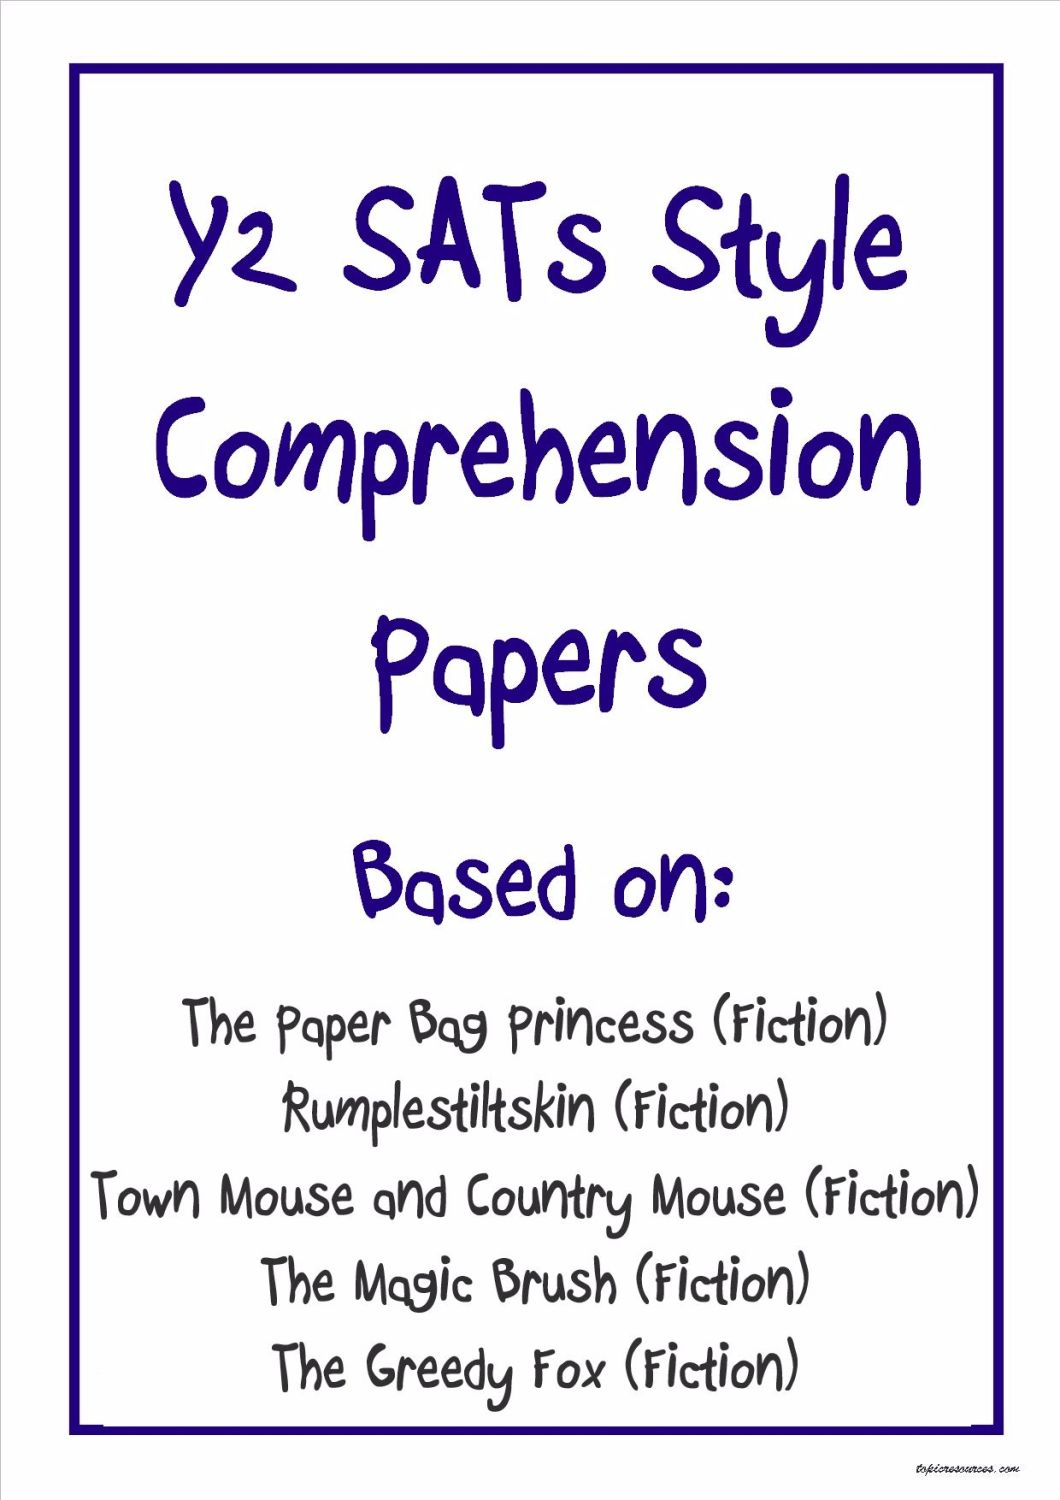 KS1 comprehension papers based on well known children's stories.